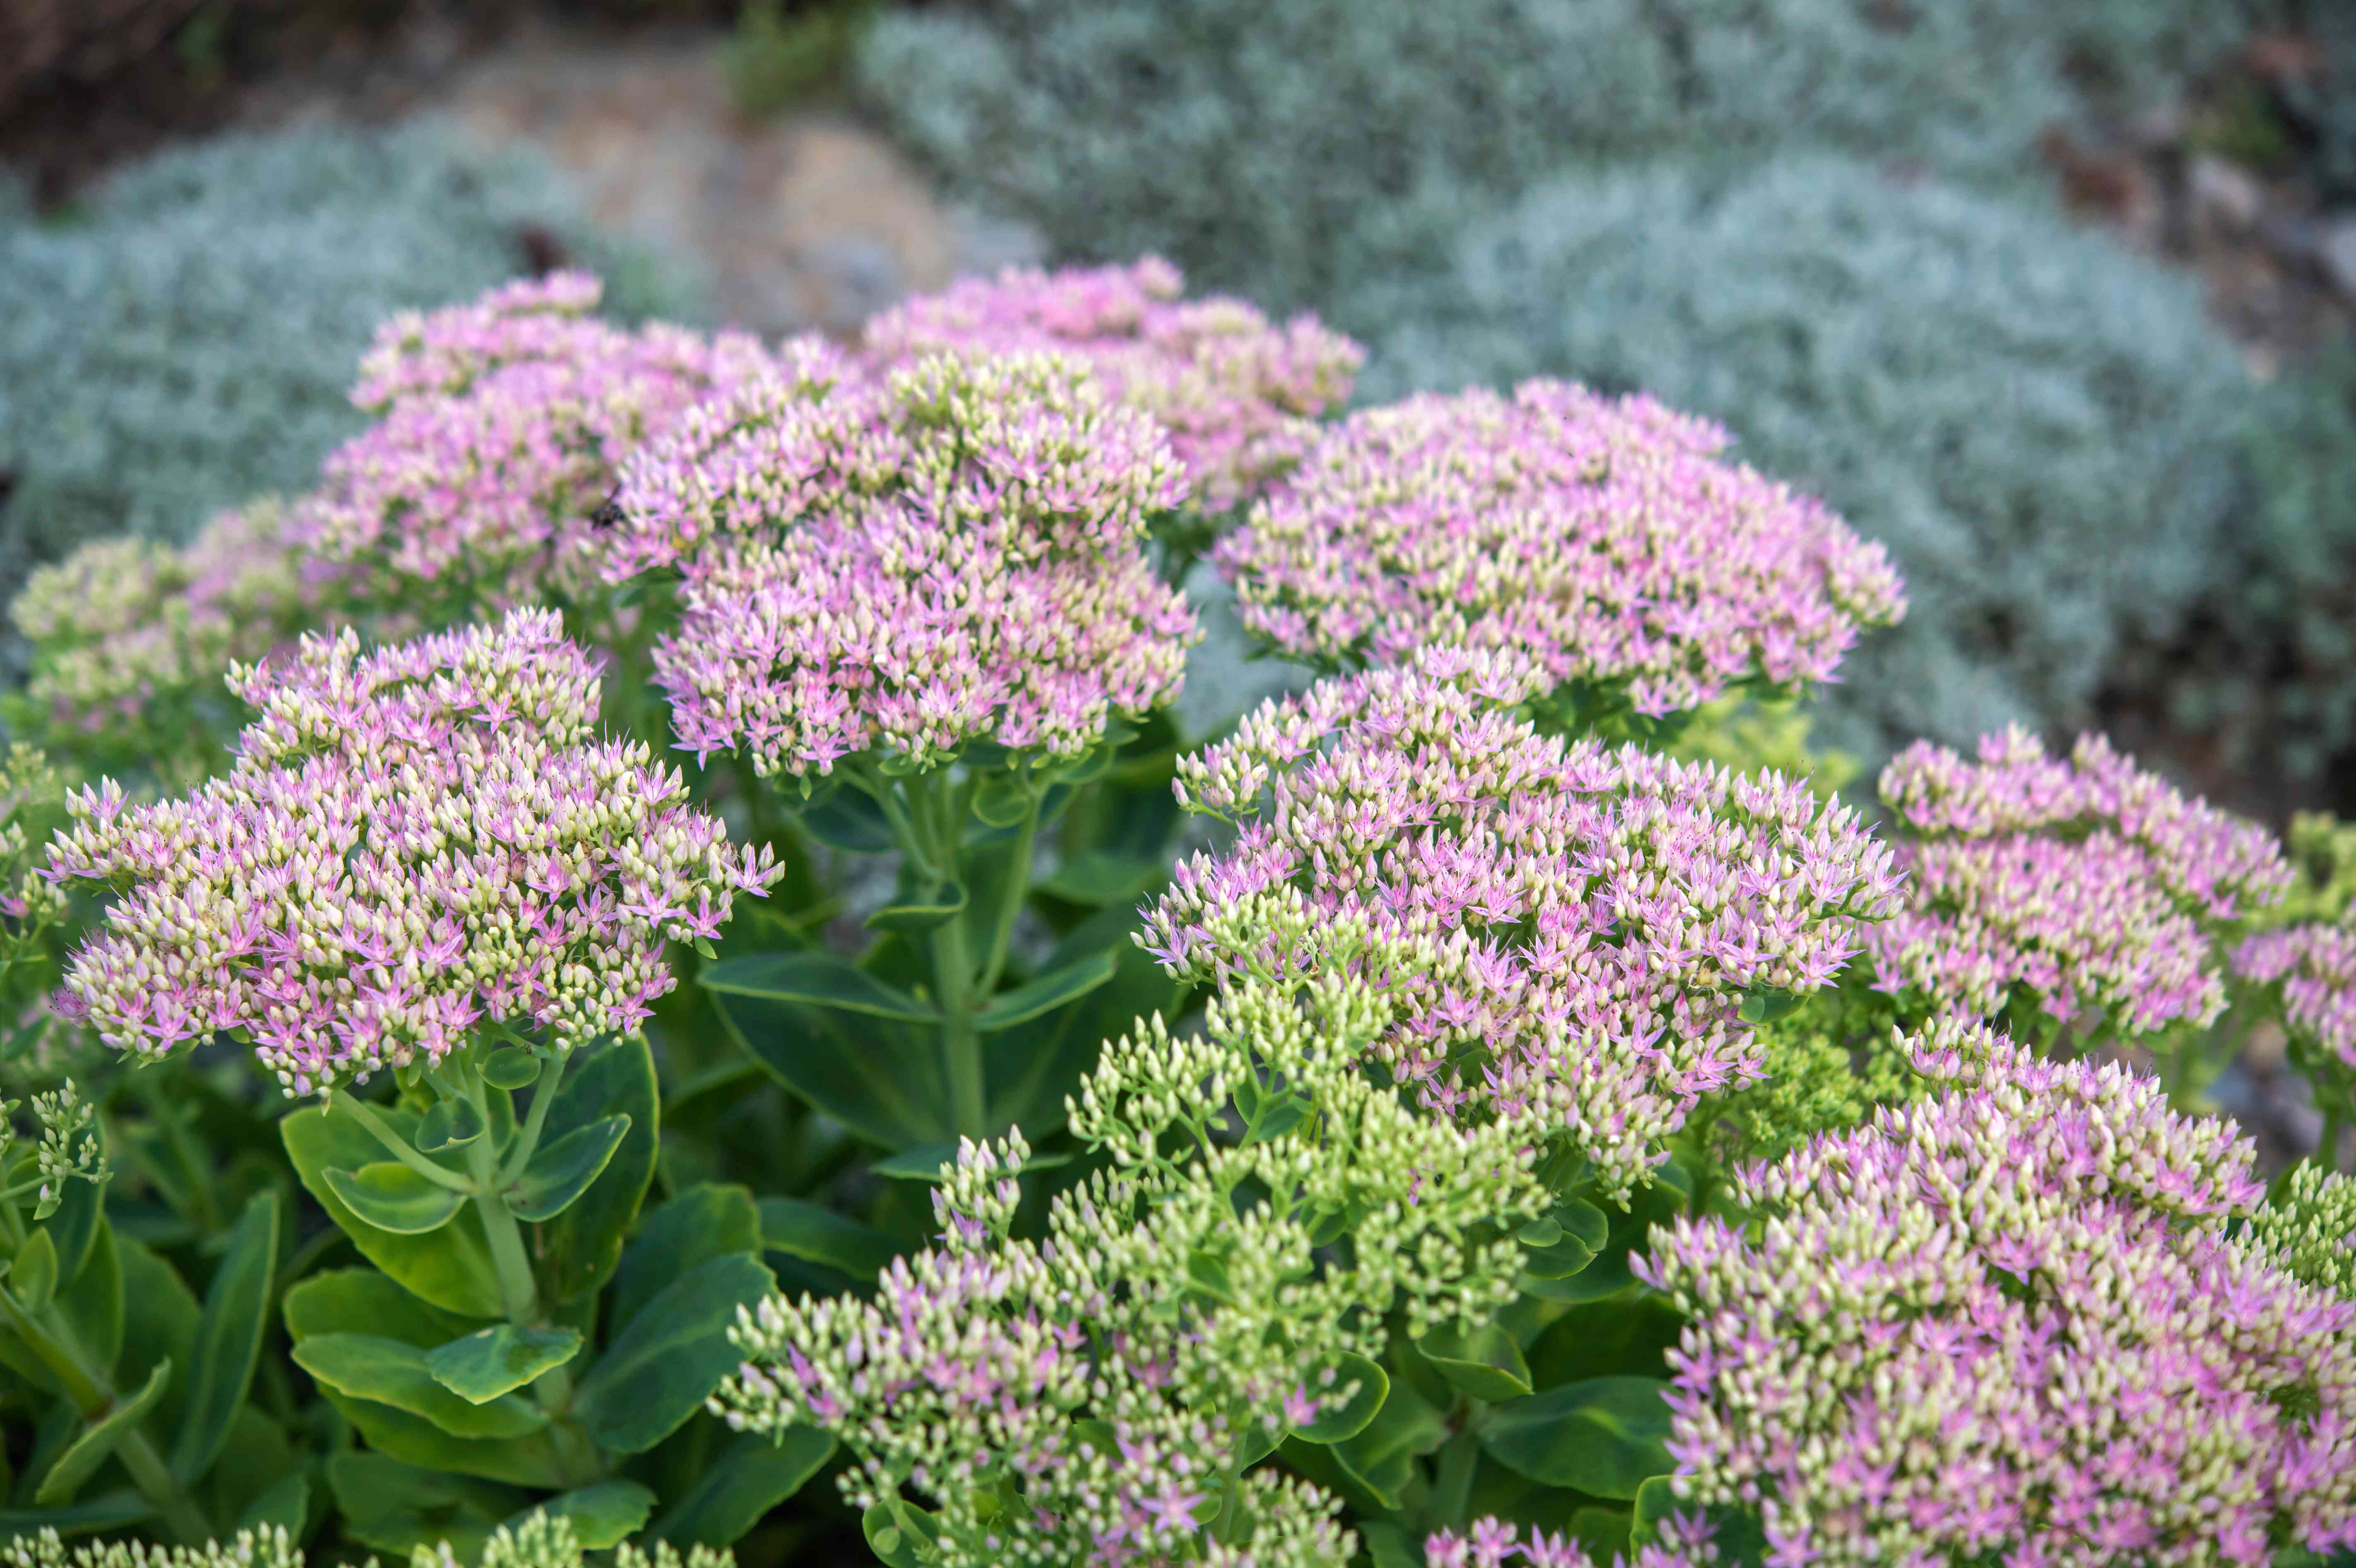 Sedum succulent with pink starlike flowers and buds